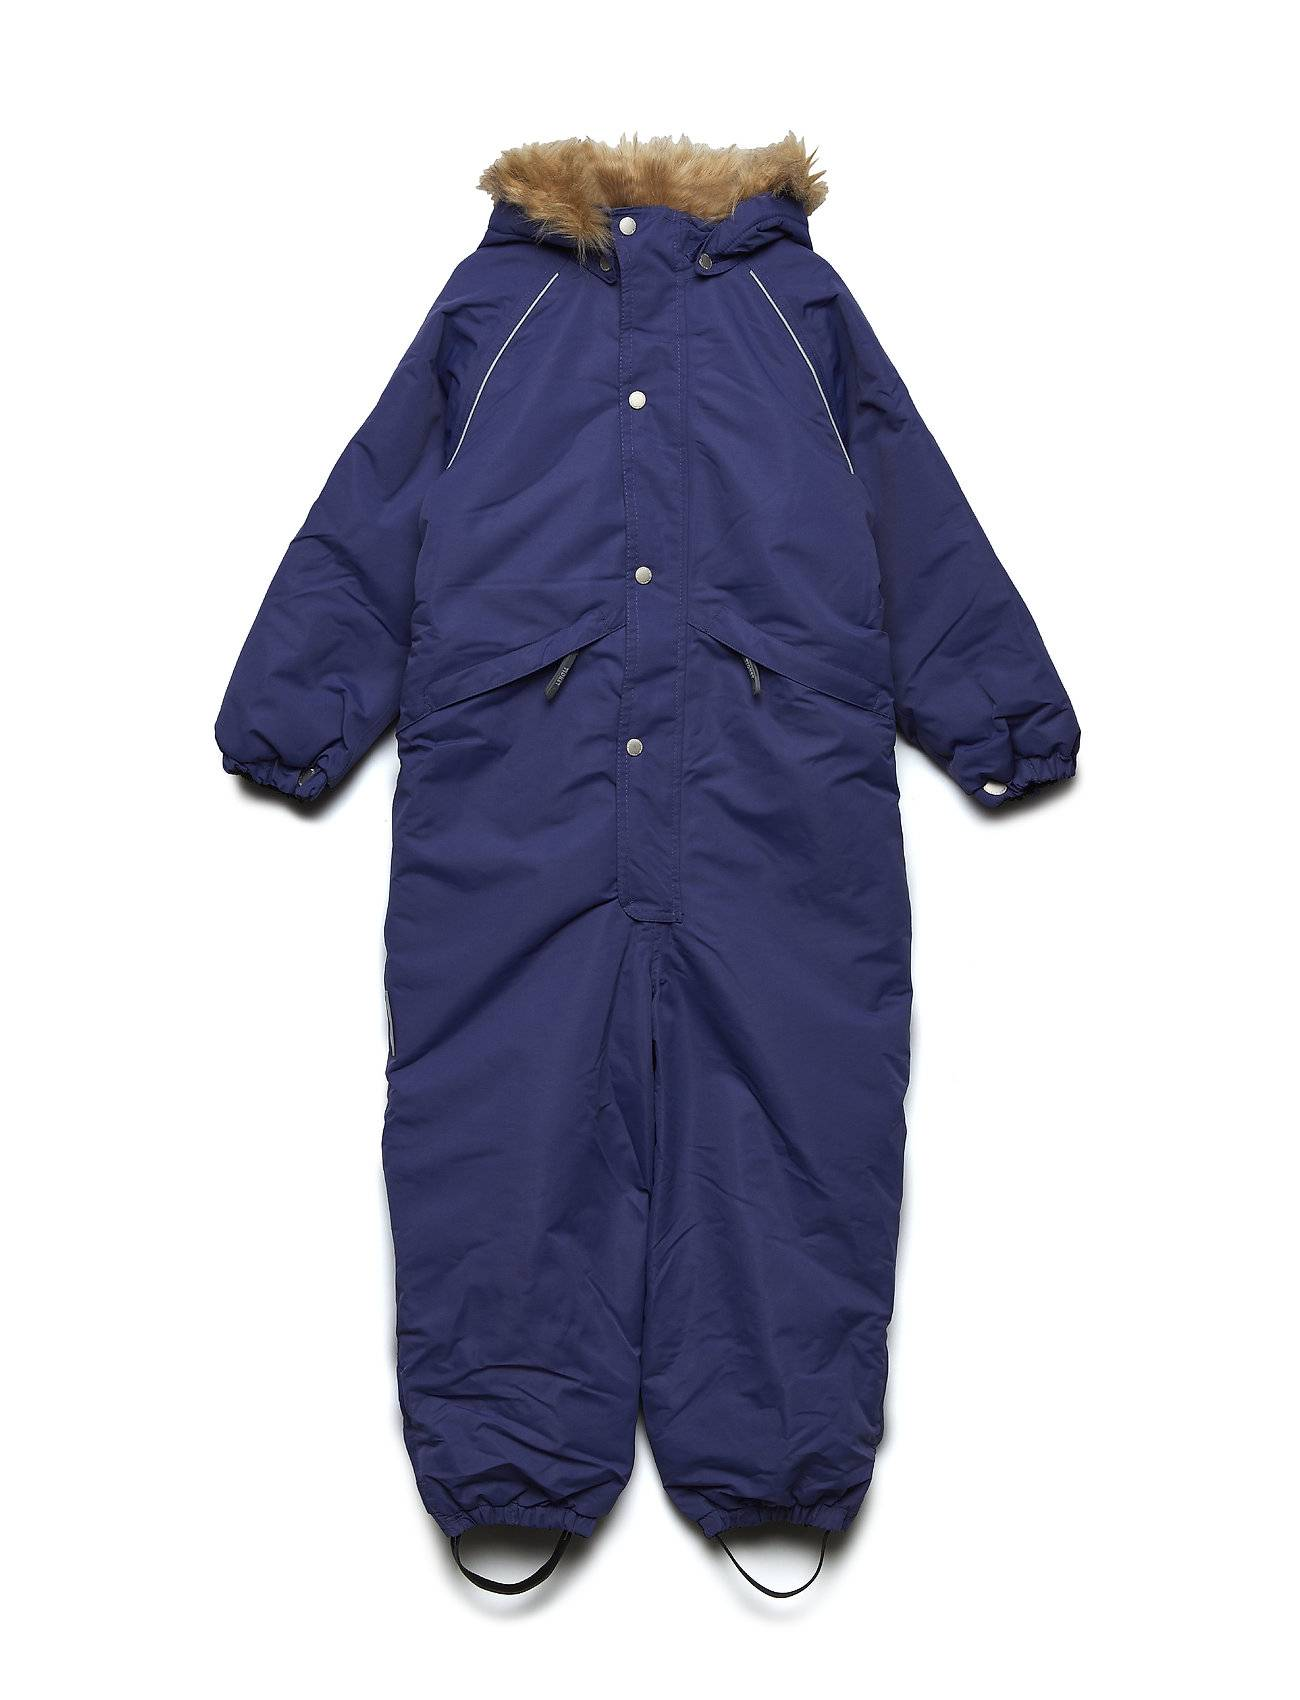 Ticket to Heaven Snowsuit Othello With Detachable Hood Outerwear Snow/ski Clothing Snow/ski Suits & Sets Liila Ticket To Heaven